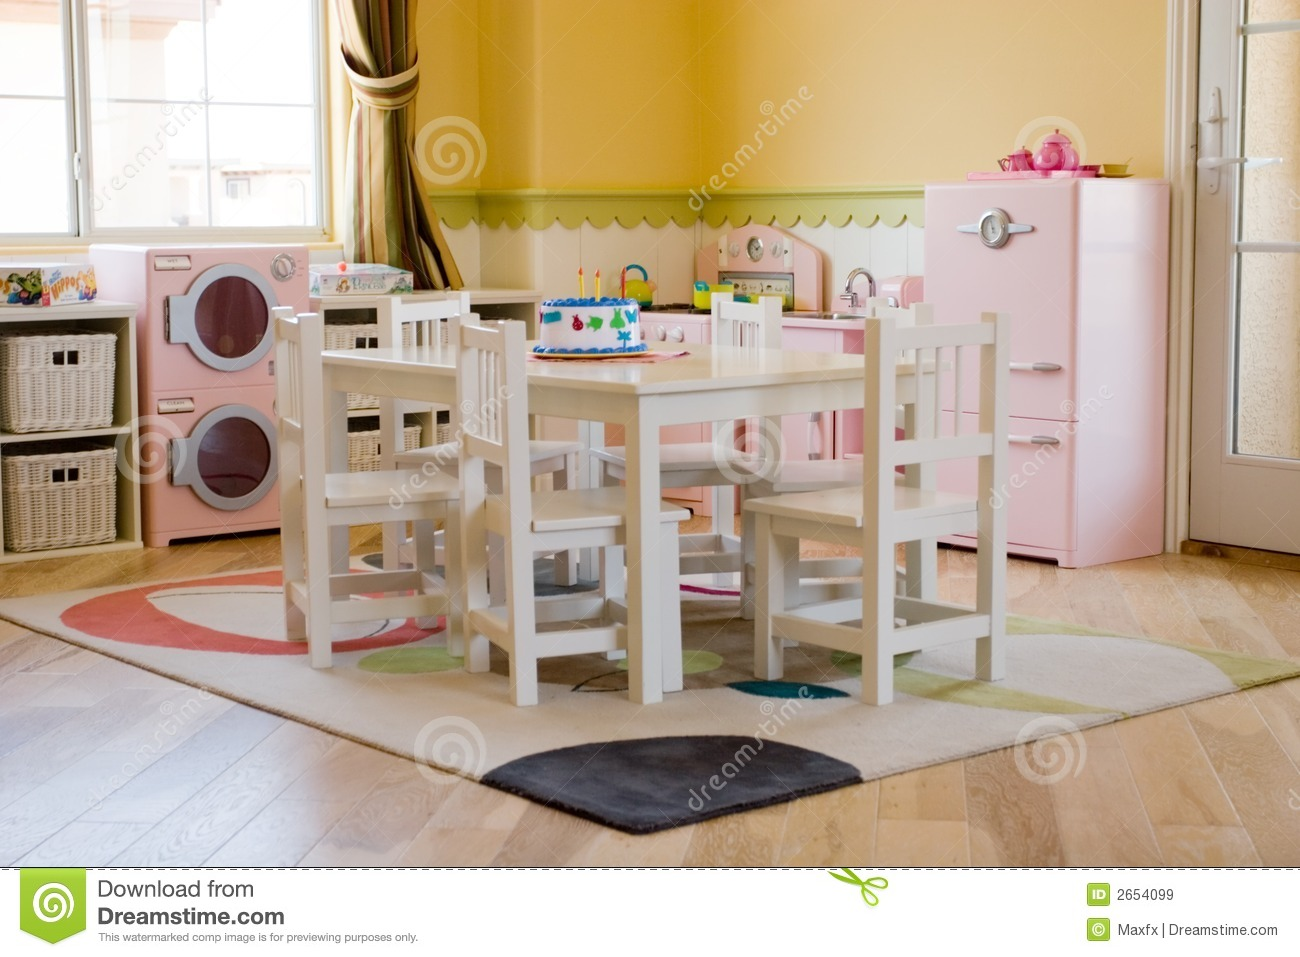 la salle de jeux des enfants image stock image 2654099. Black Bedroom Furniture Sets. Home Design Ideas